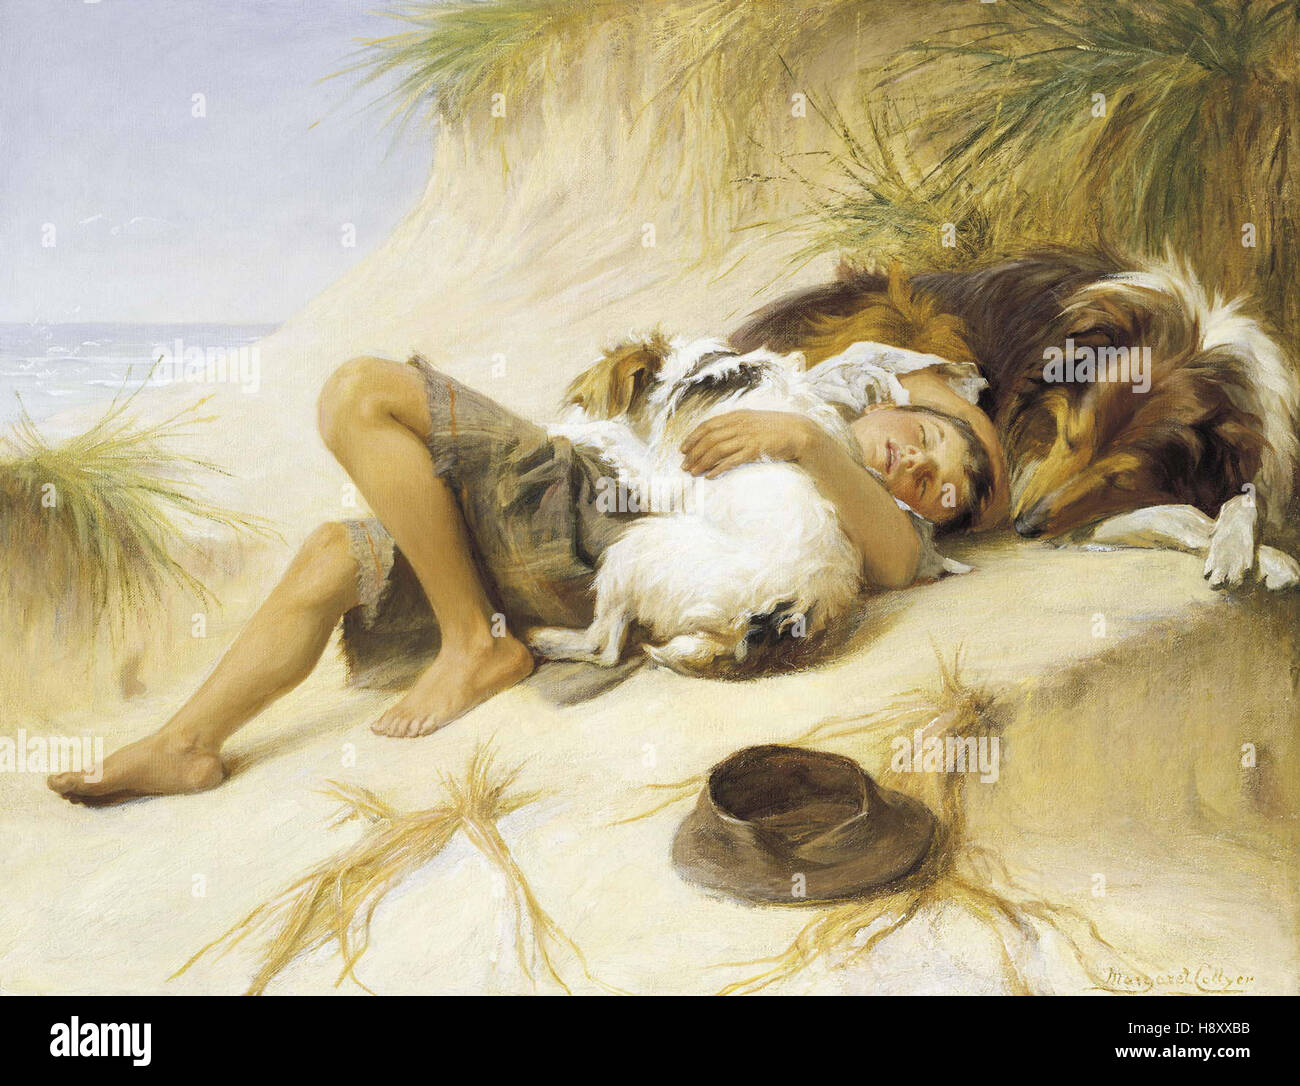 Margaret Collyer   Lazy Days - Stock Image